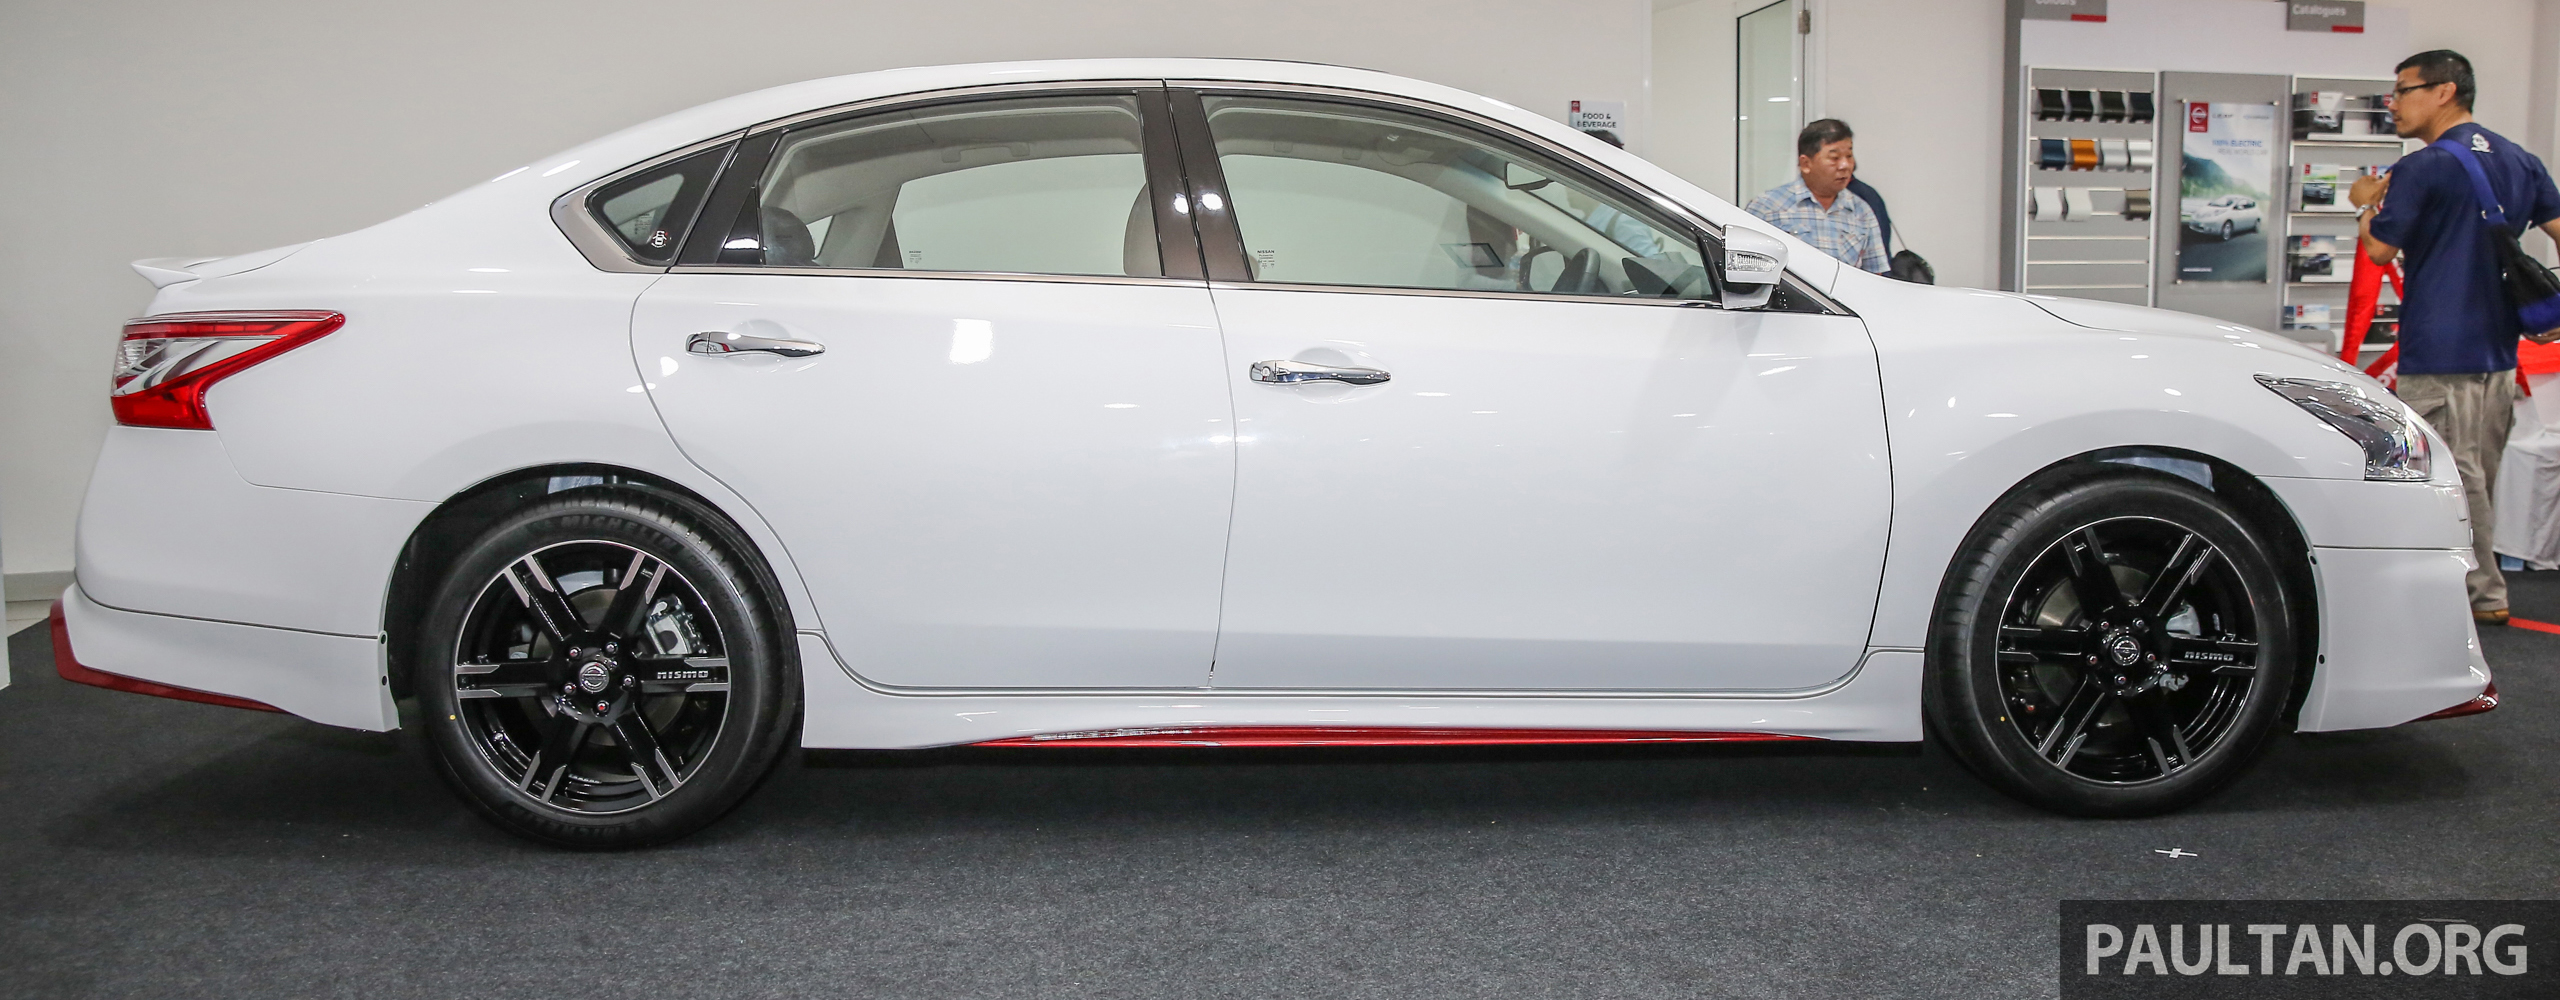 Nissan 2018 >> Nissan Teana Nismo Performance Package, from RM6k Paul Tan - Image 592965